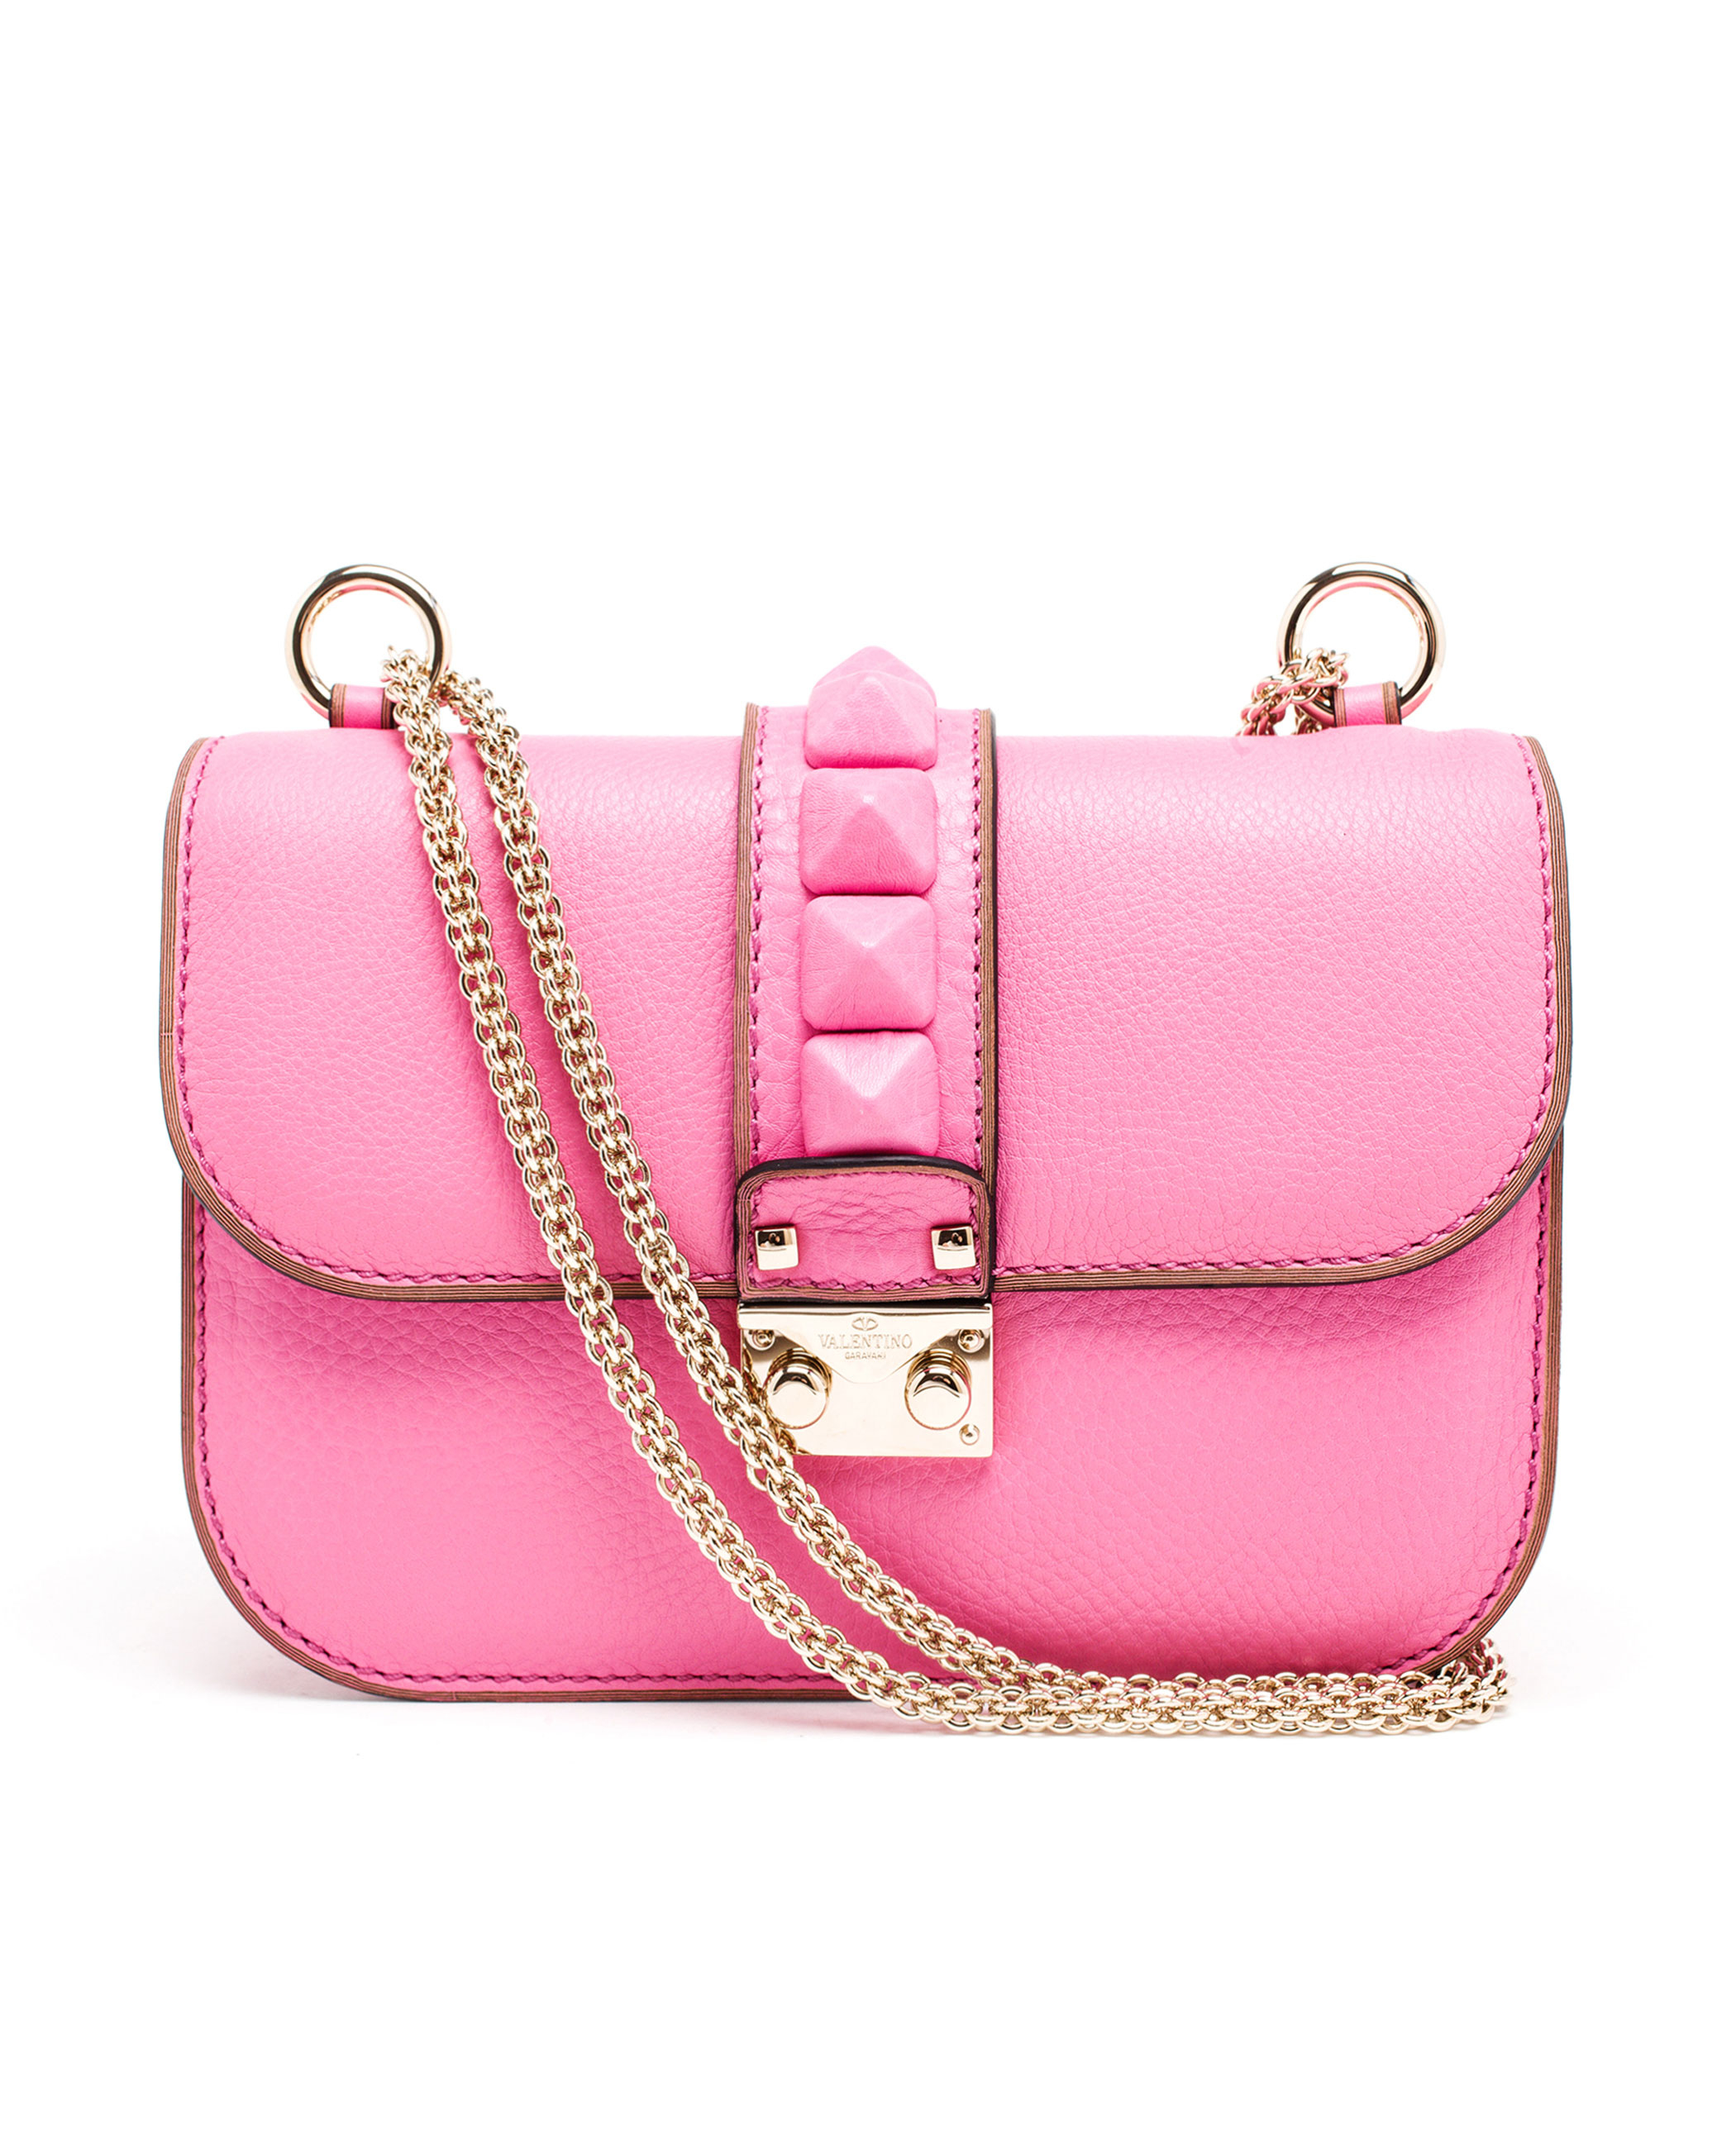 Gallery Previously Sold At Browns Women S Valentino Rockstud Bags